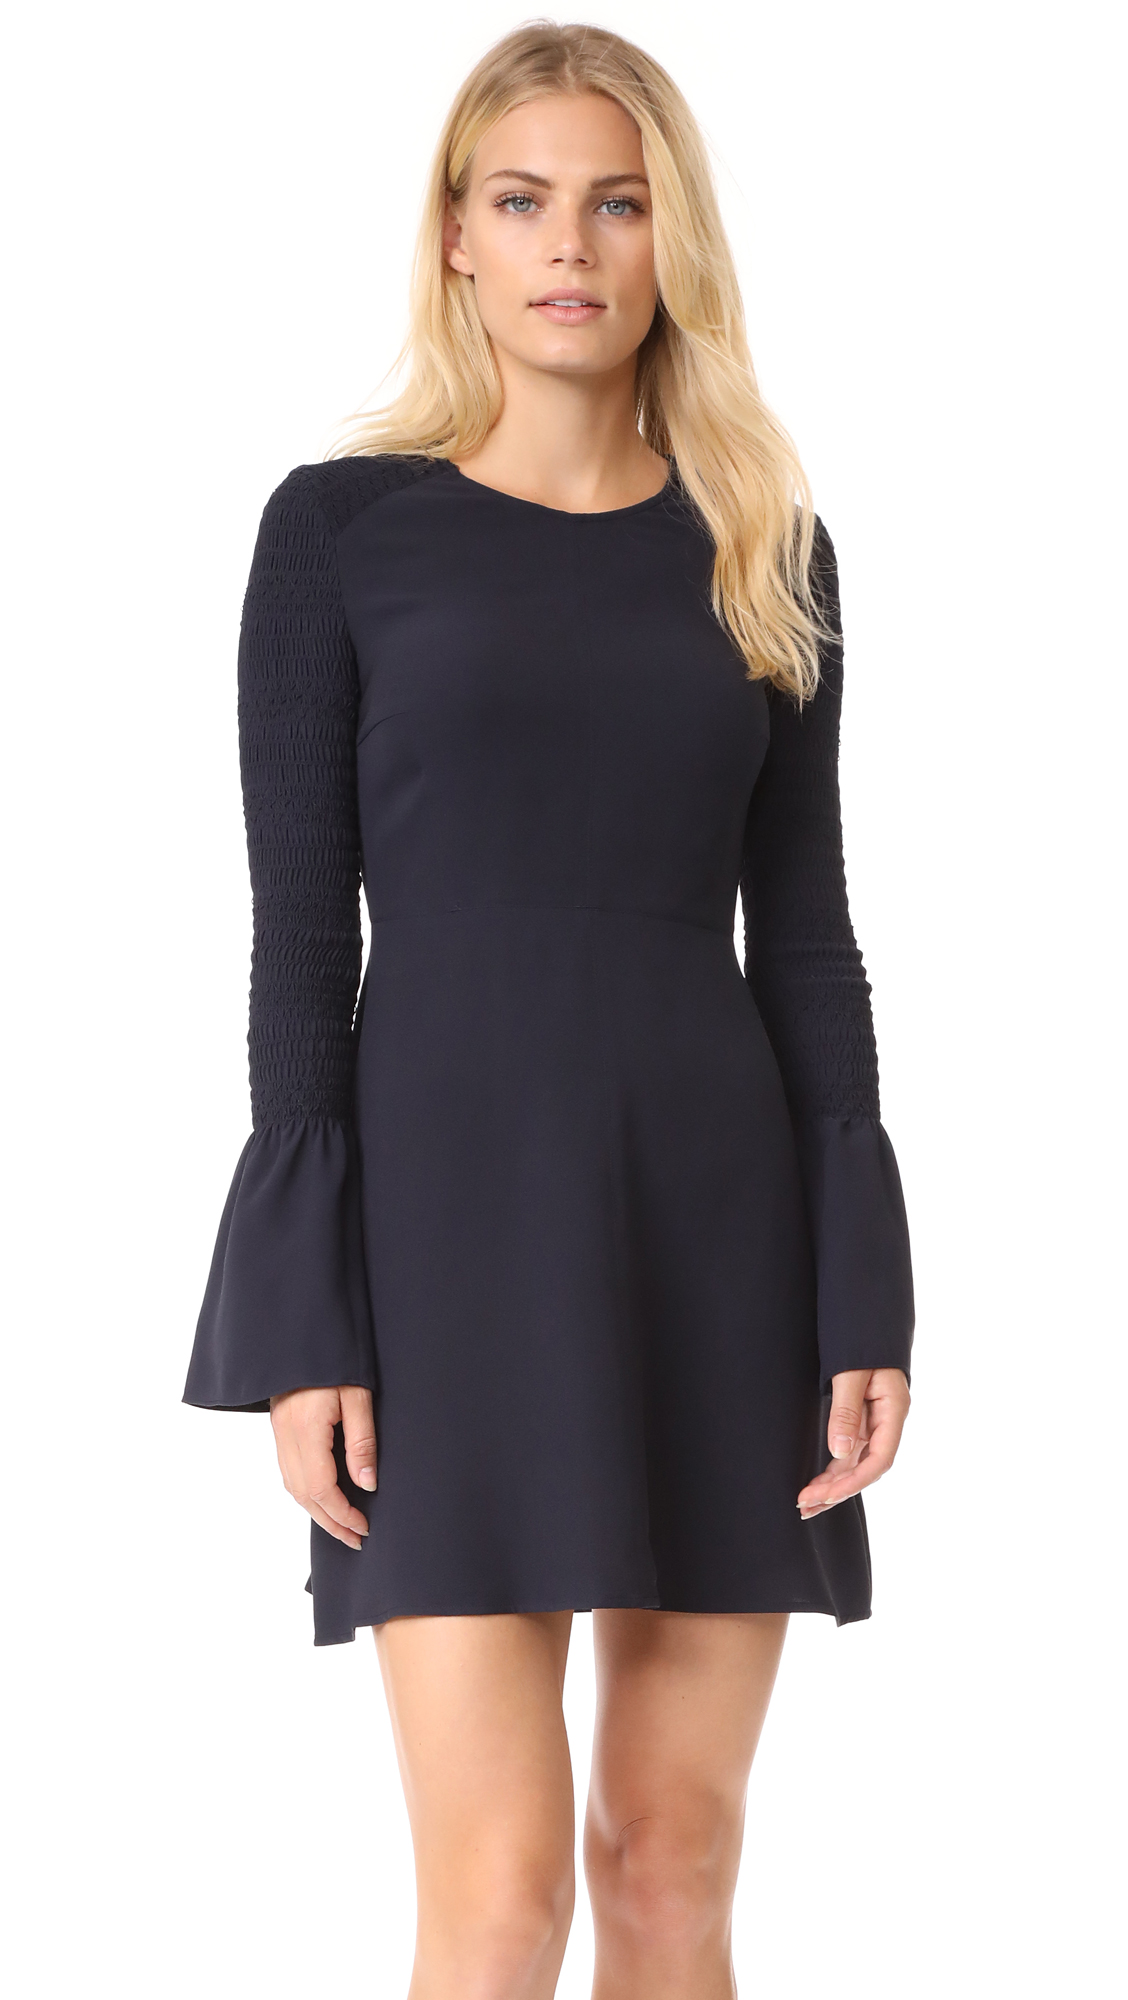 A.L.C. Alexa Dress - Midnight